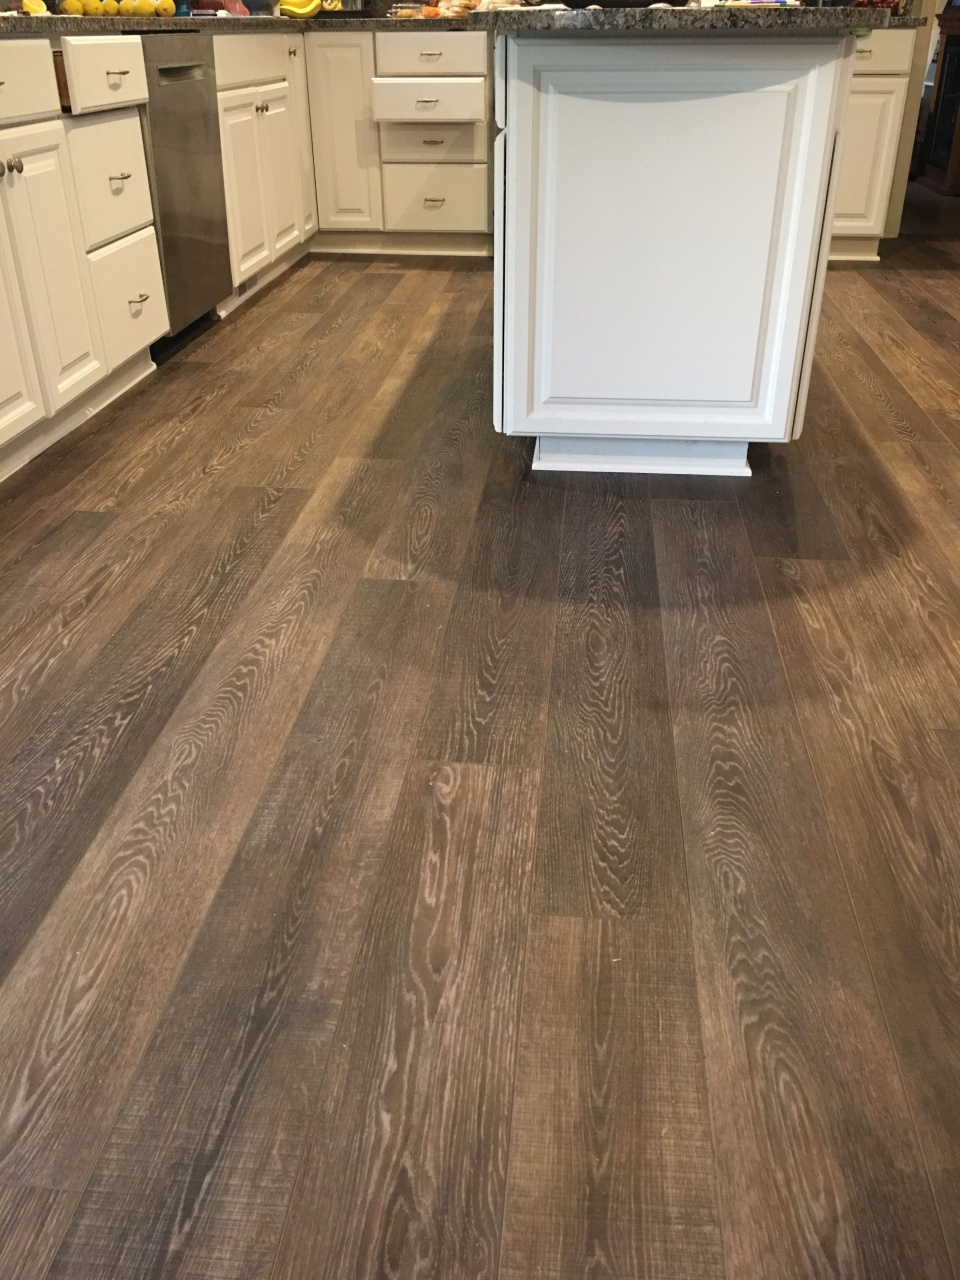 Floating Vinyl Tile Flooring